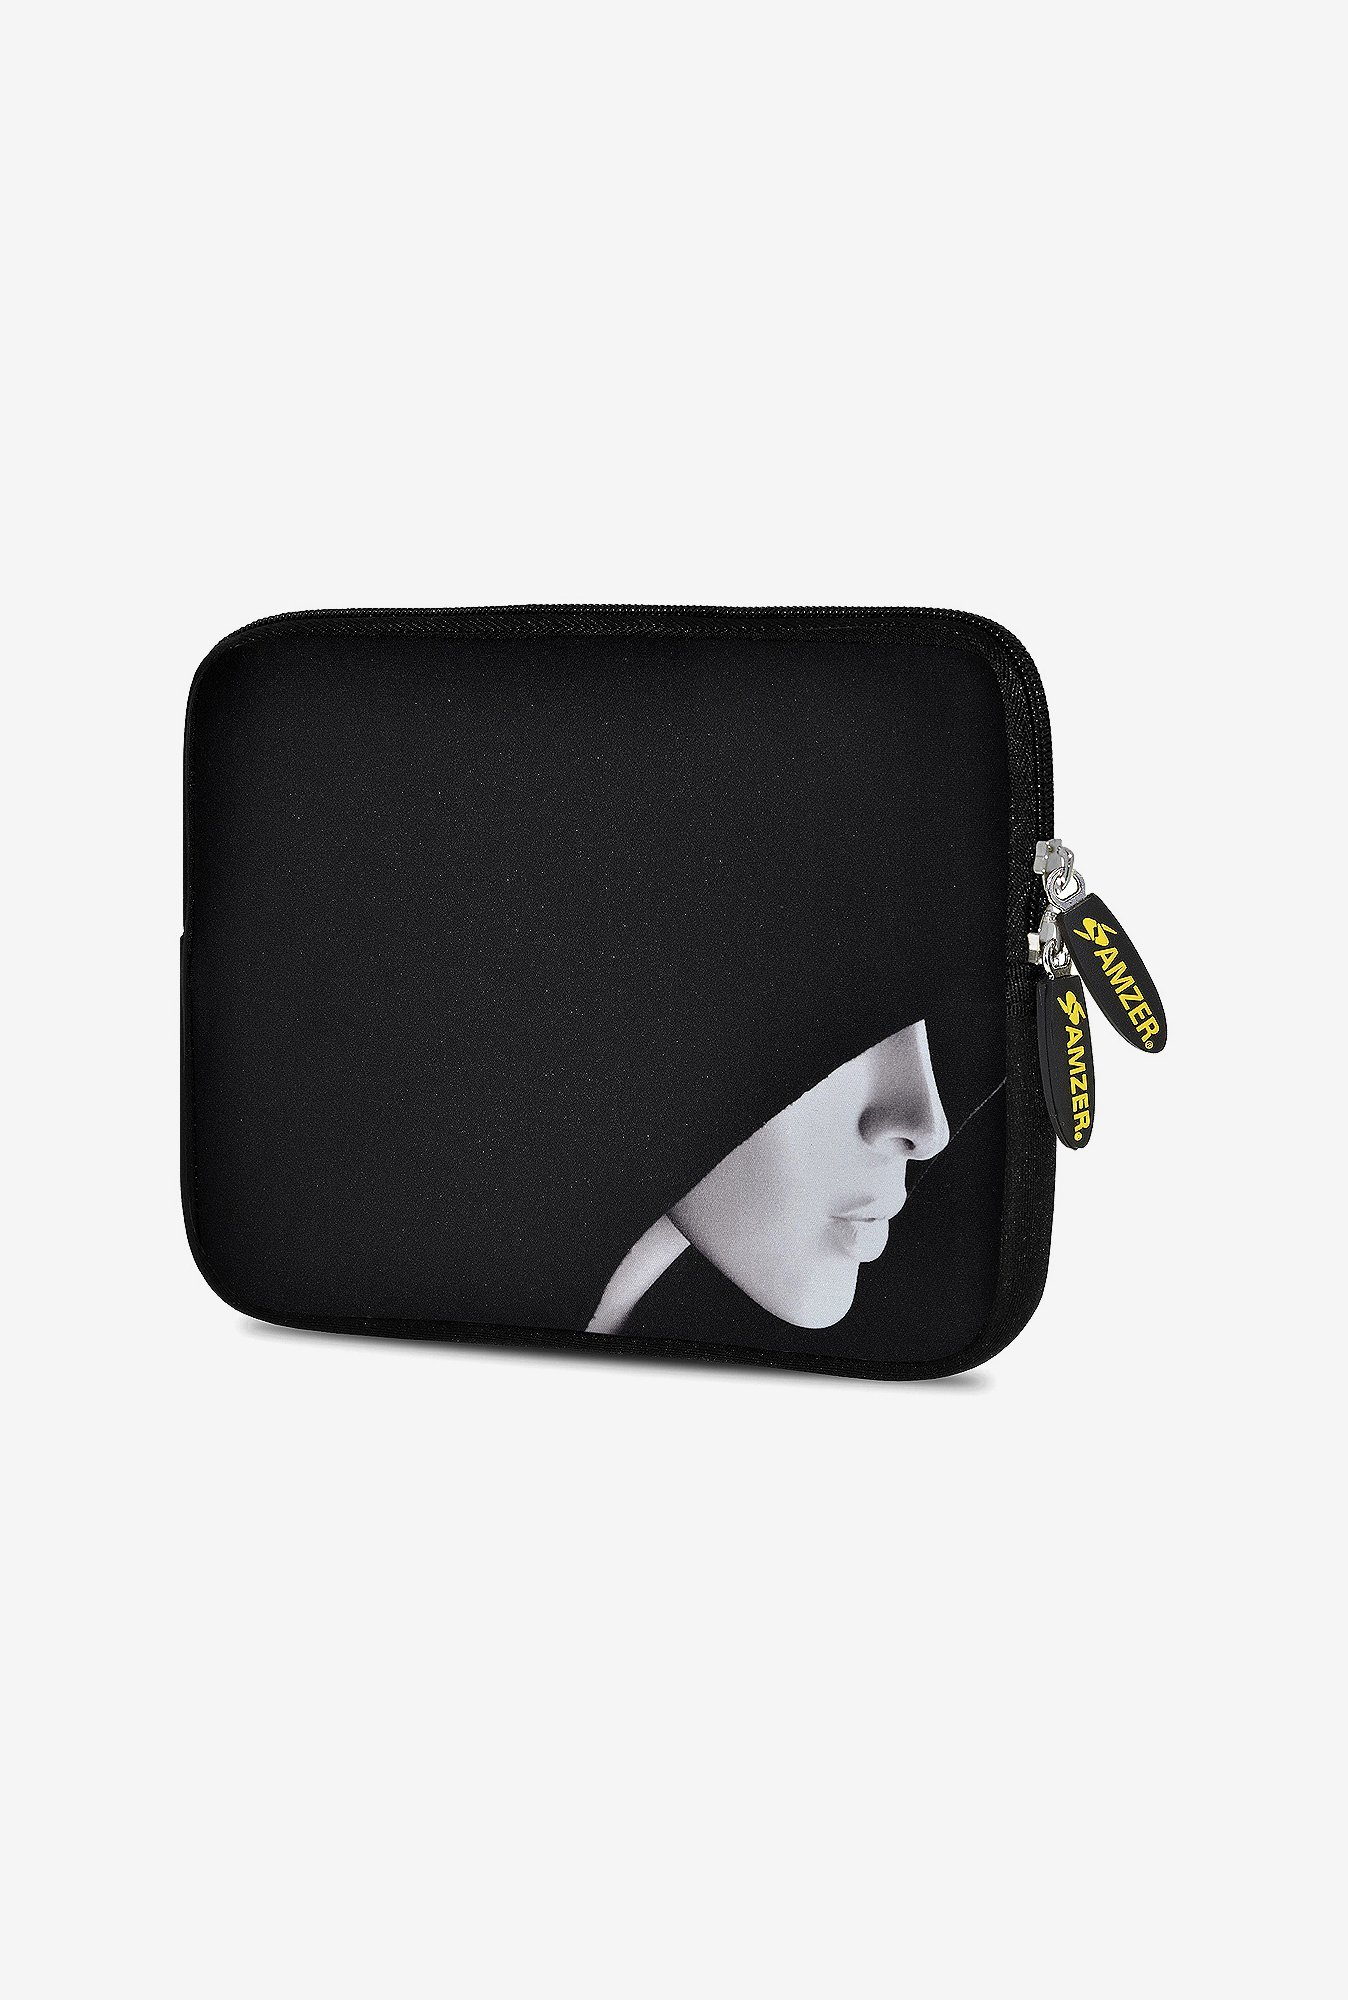 Amzer 10.5 Inch Neoprene Sleeve - The Dark Lord